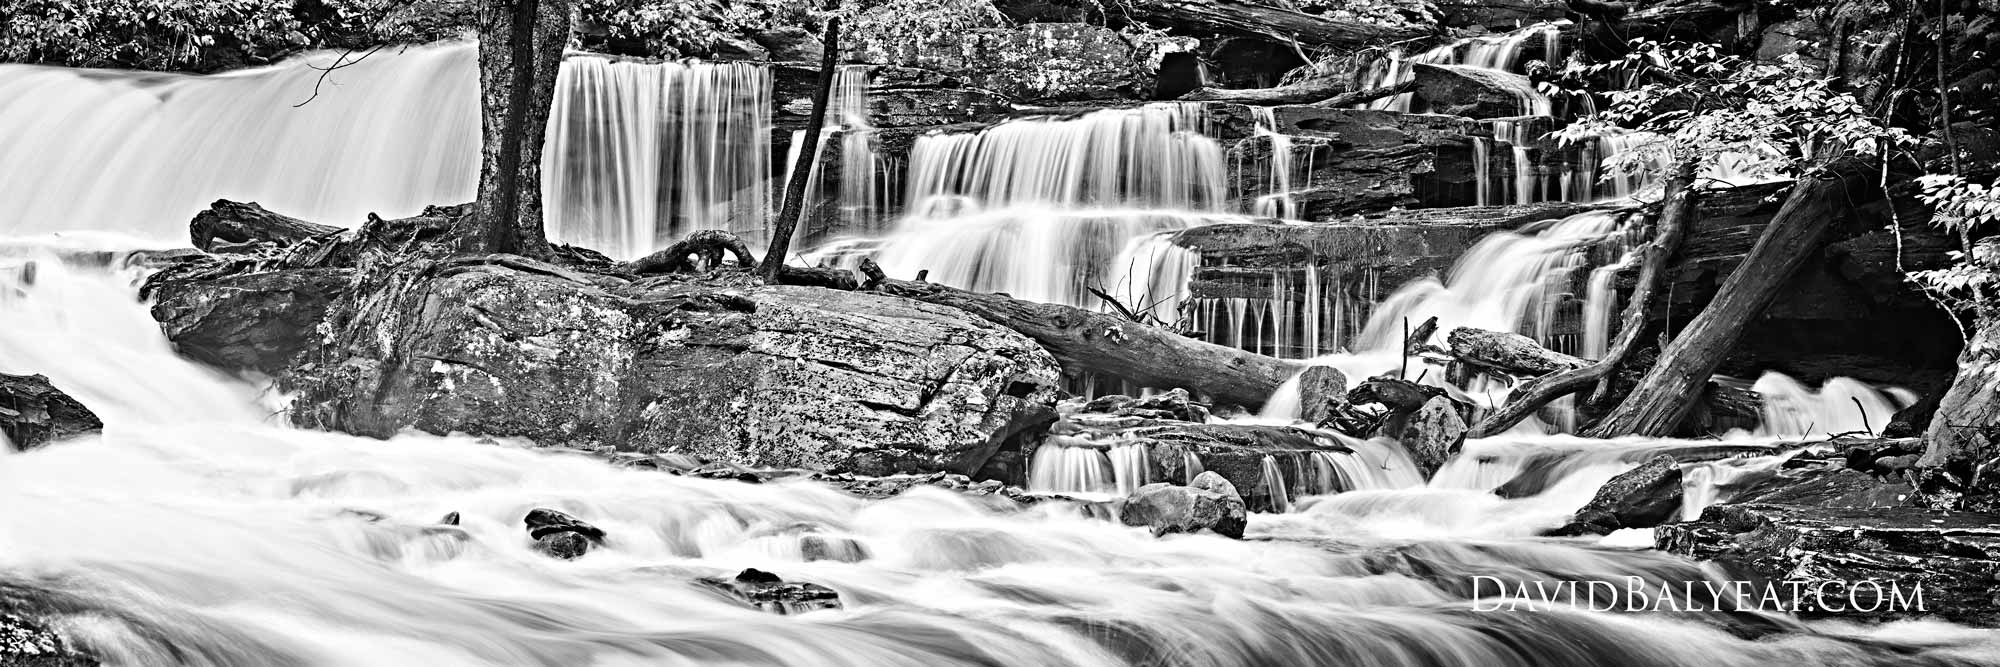 Ricketts Glen State Park waterfall black and white high-definition HD professional landscape photography